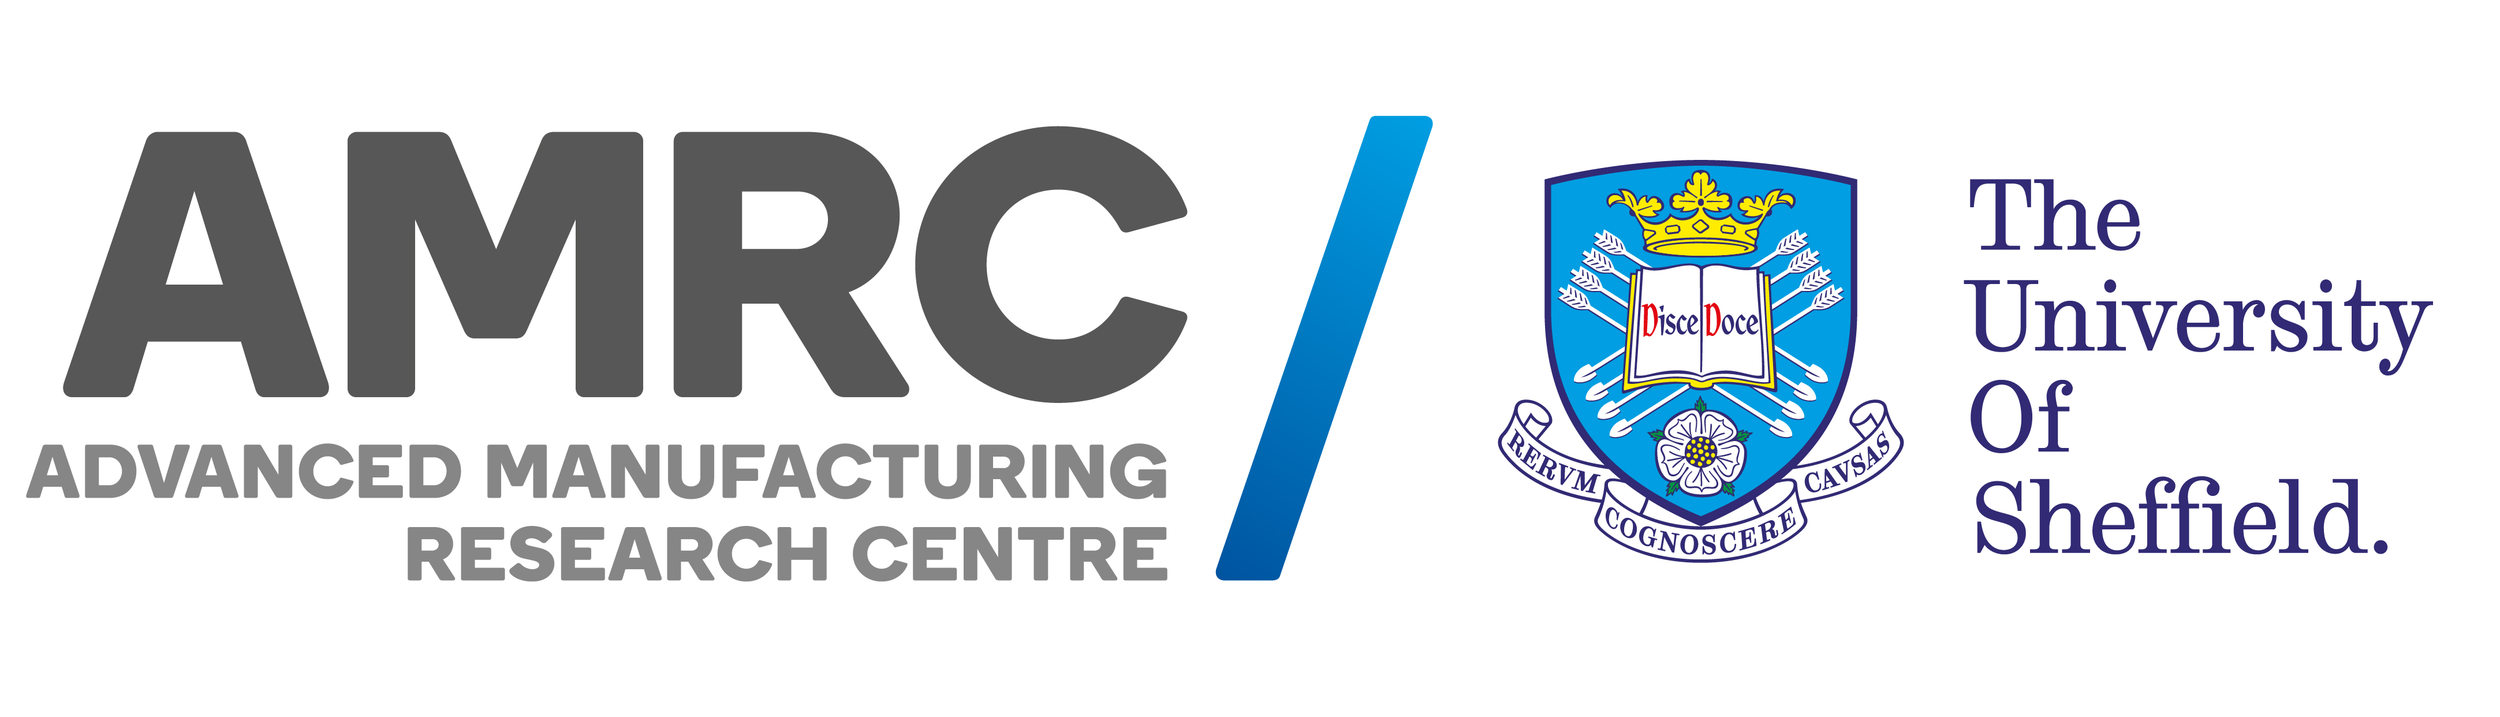 Advanced Manufacturing Research Centre - January 2018